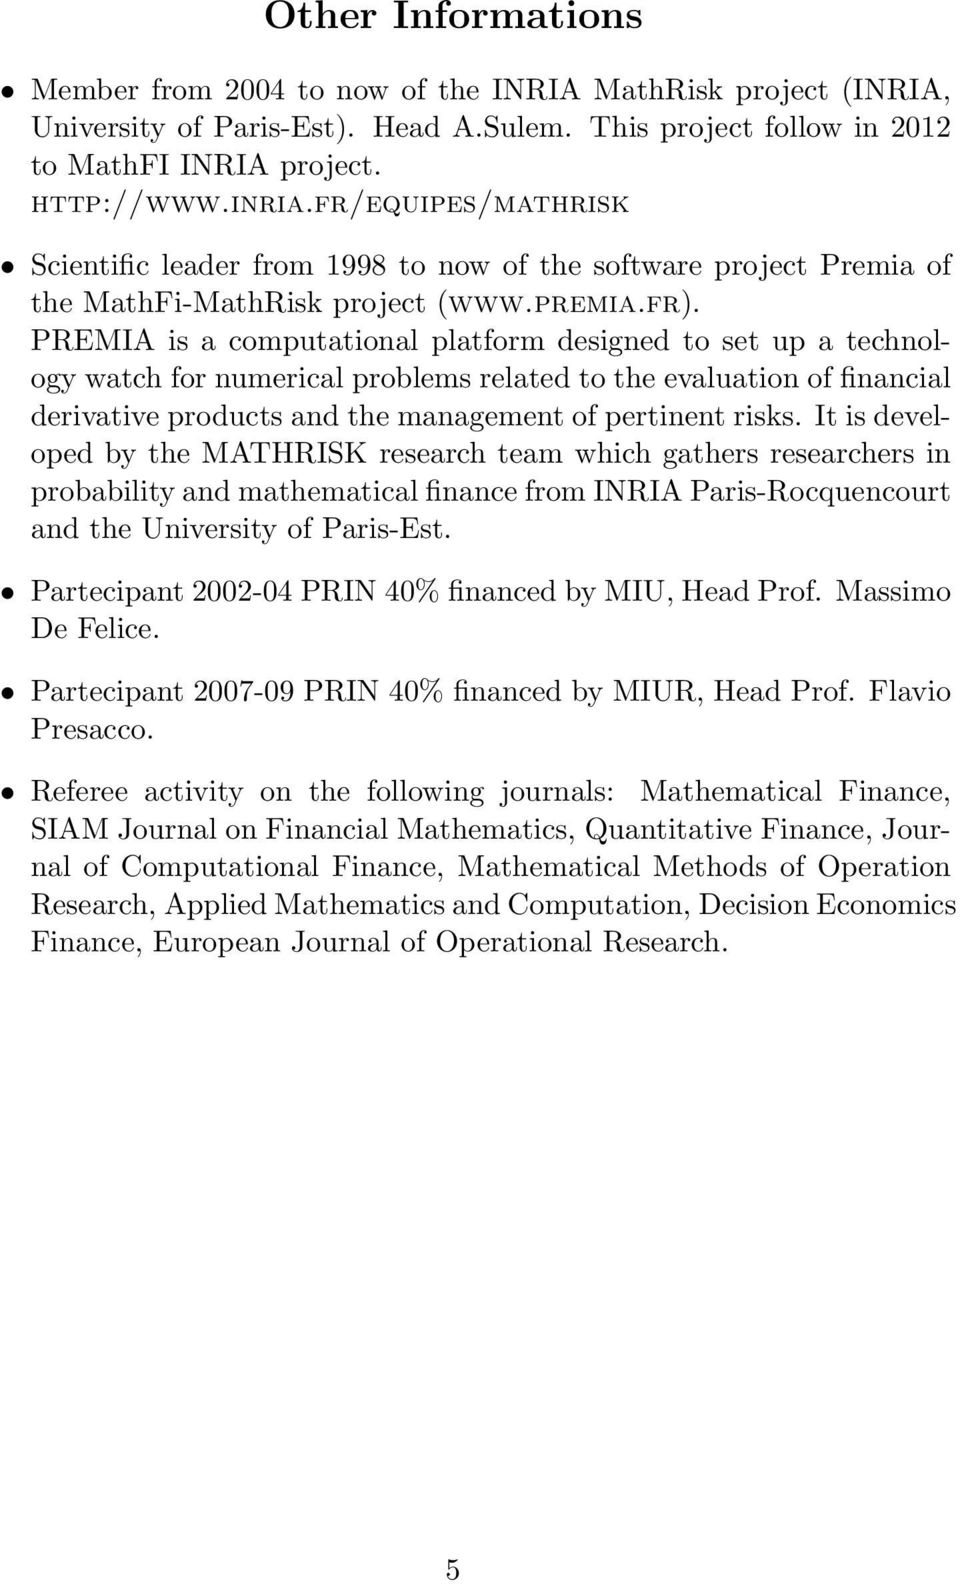 PREMIA is a computational platform designed to set up a technology watch for numerical problems related to the evaluation of financial derivative products and the management of pertinent risks.